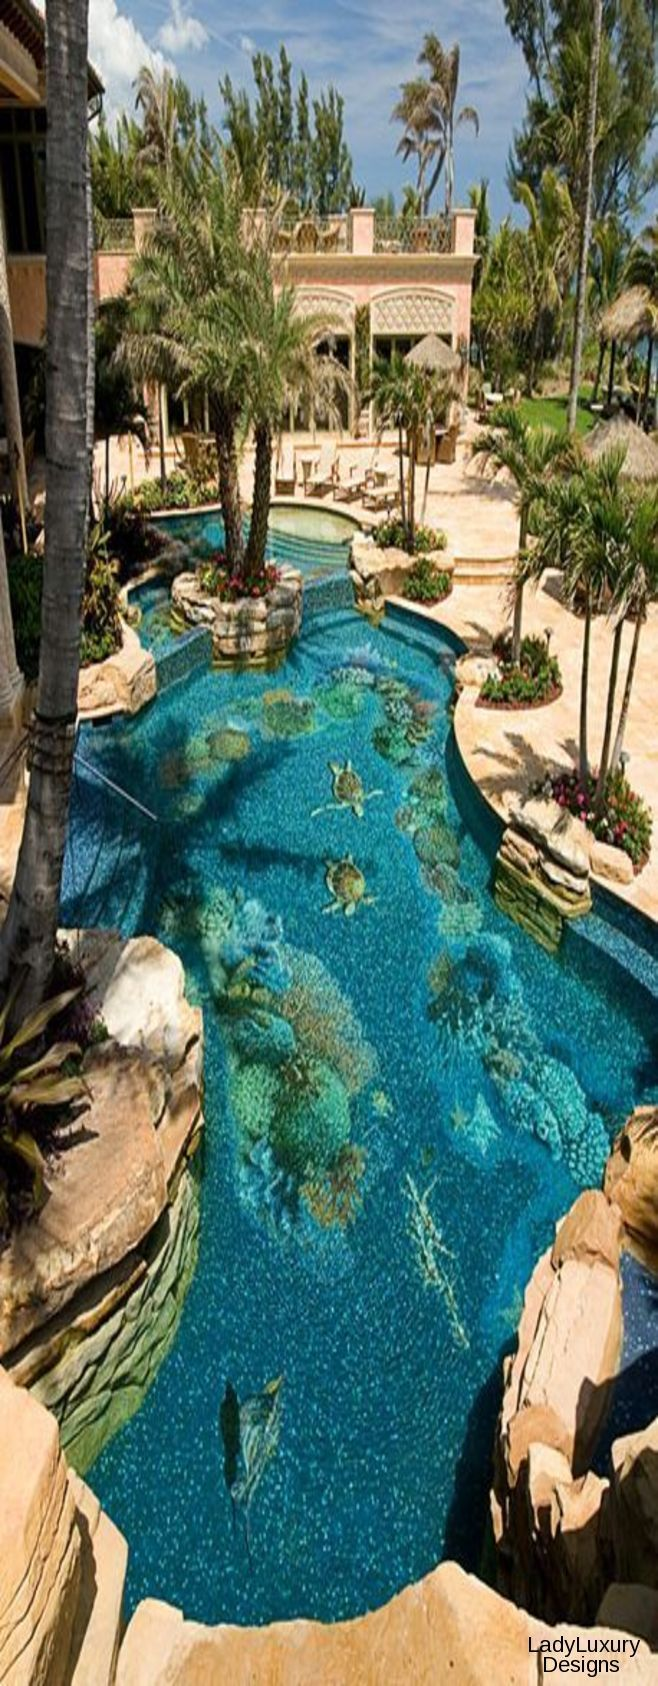 Luxury Beach Home- Luxurious Outdoor Pool | LadyLuxuryDesigns